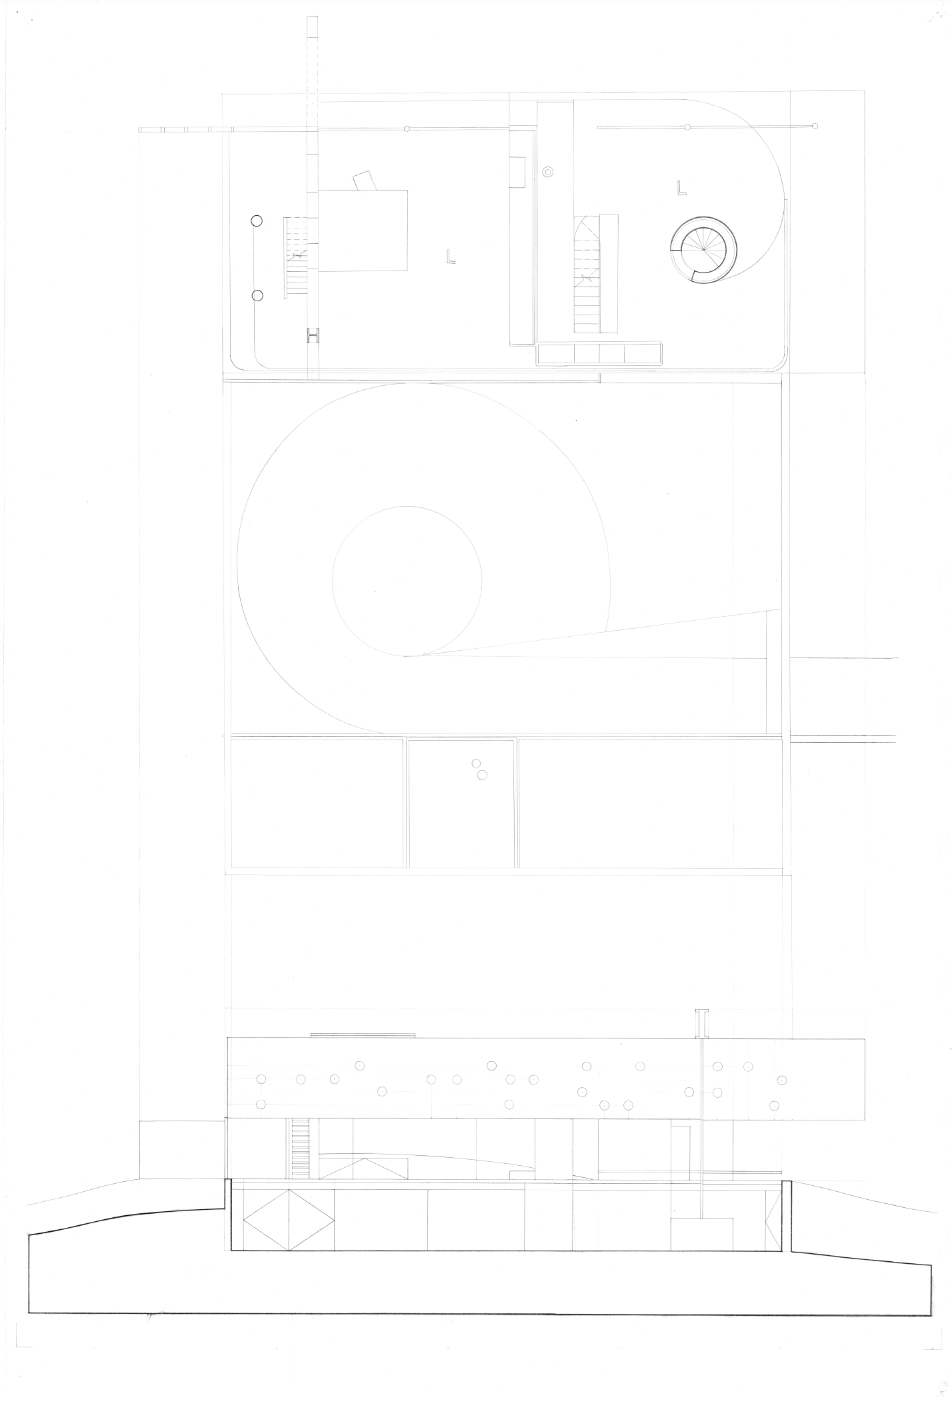 Second Floor Plan; Longitudinal Section